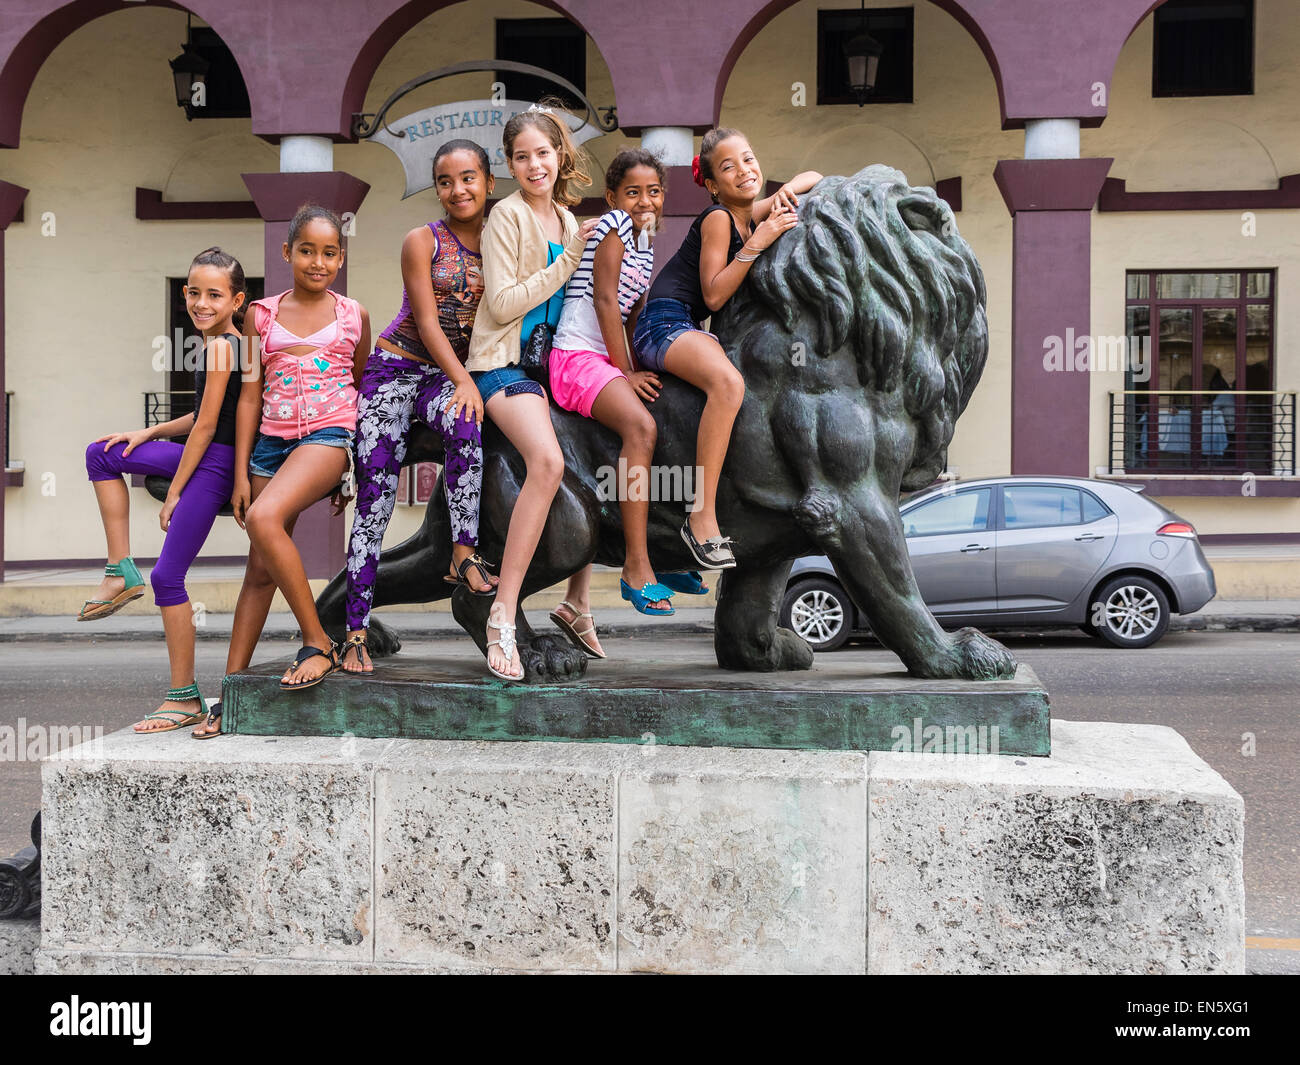 Six Cuban girls sit on a lion statue while posing for a photograph in Havana, Cuba. - Stock Image